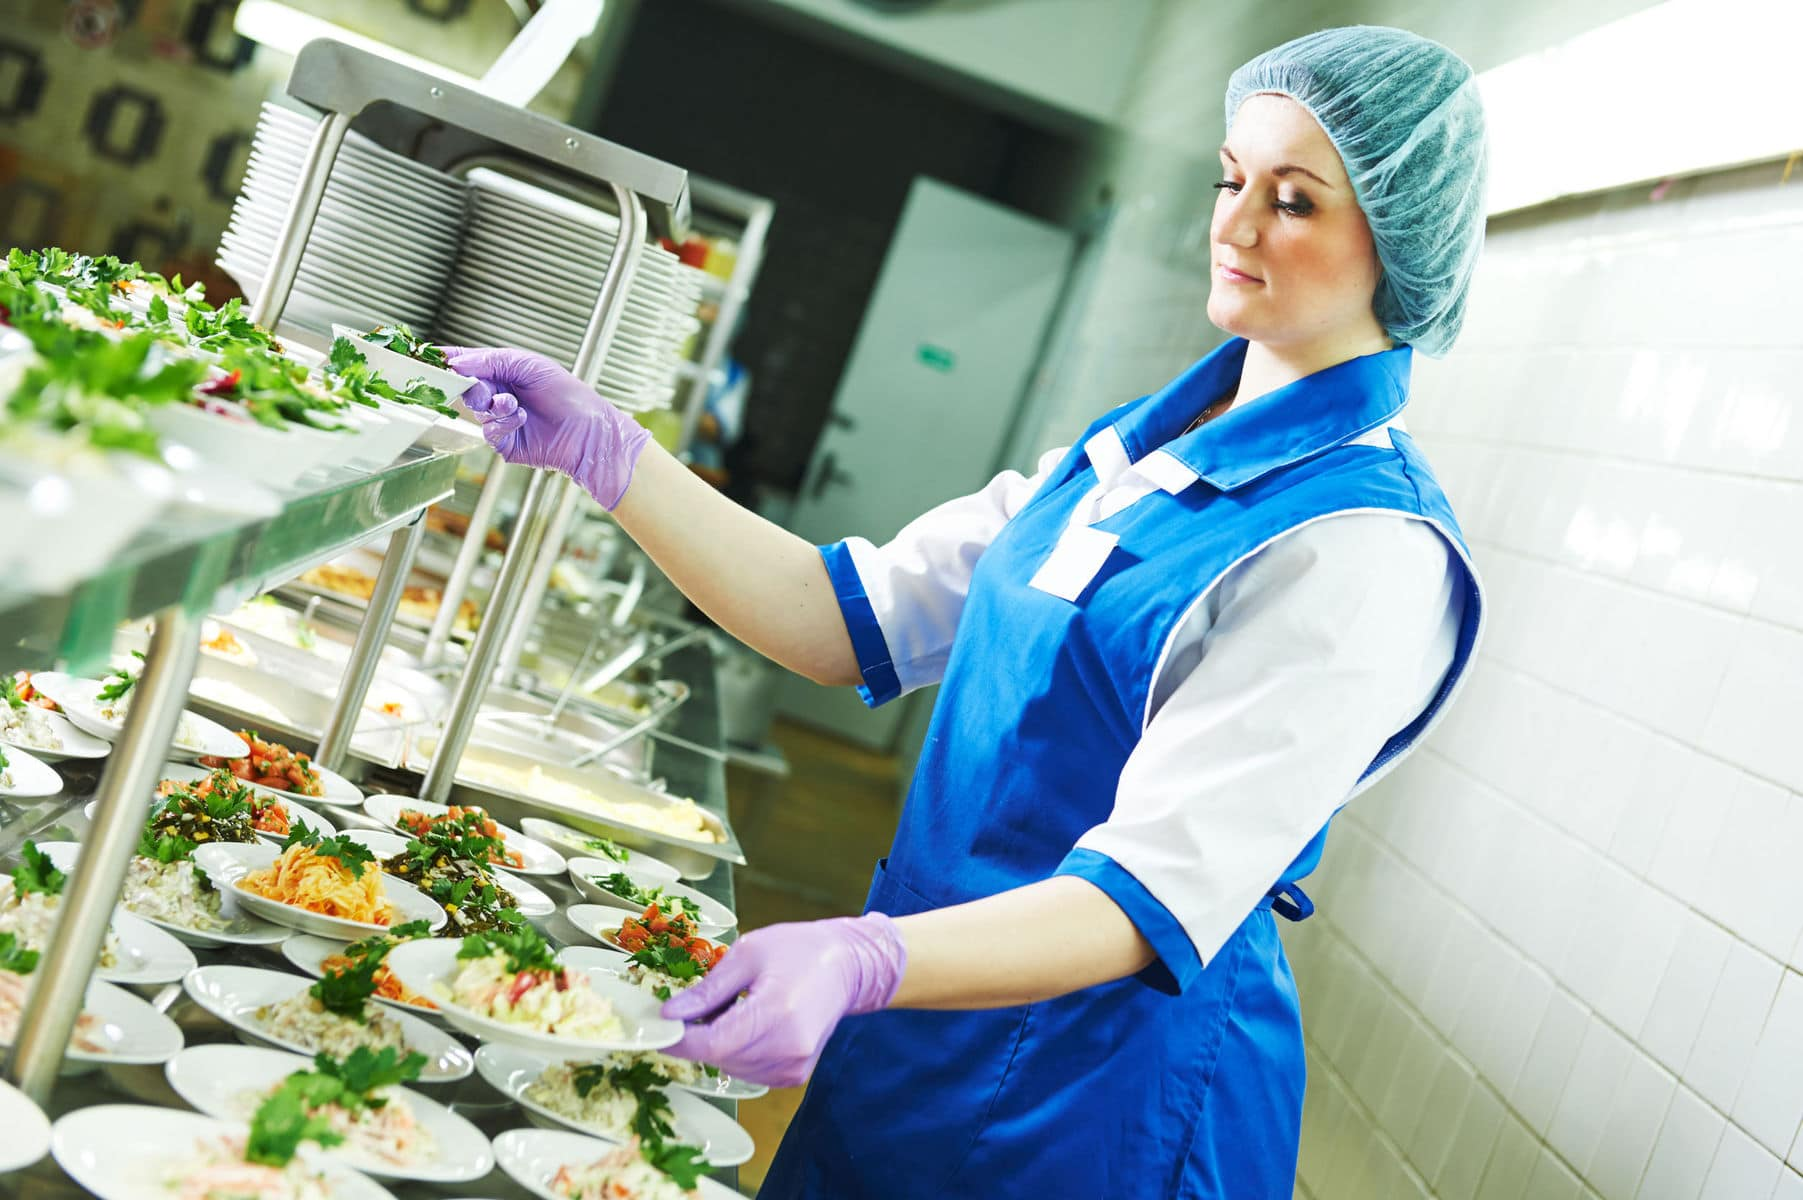 Food hygiene requirements in schools